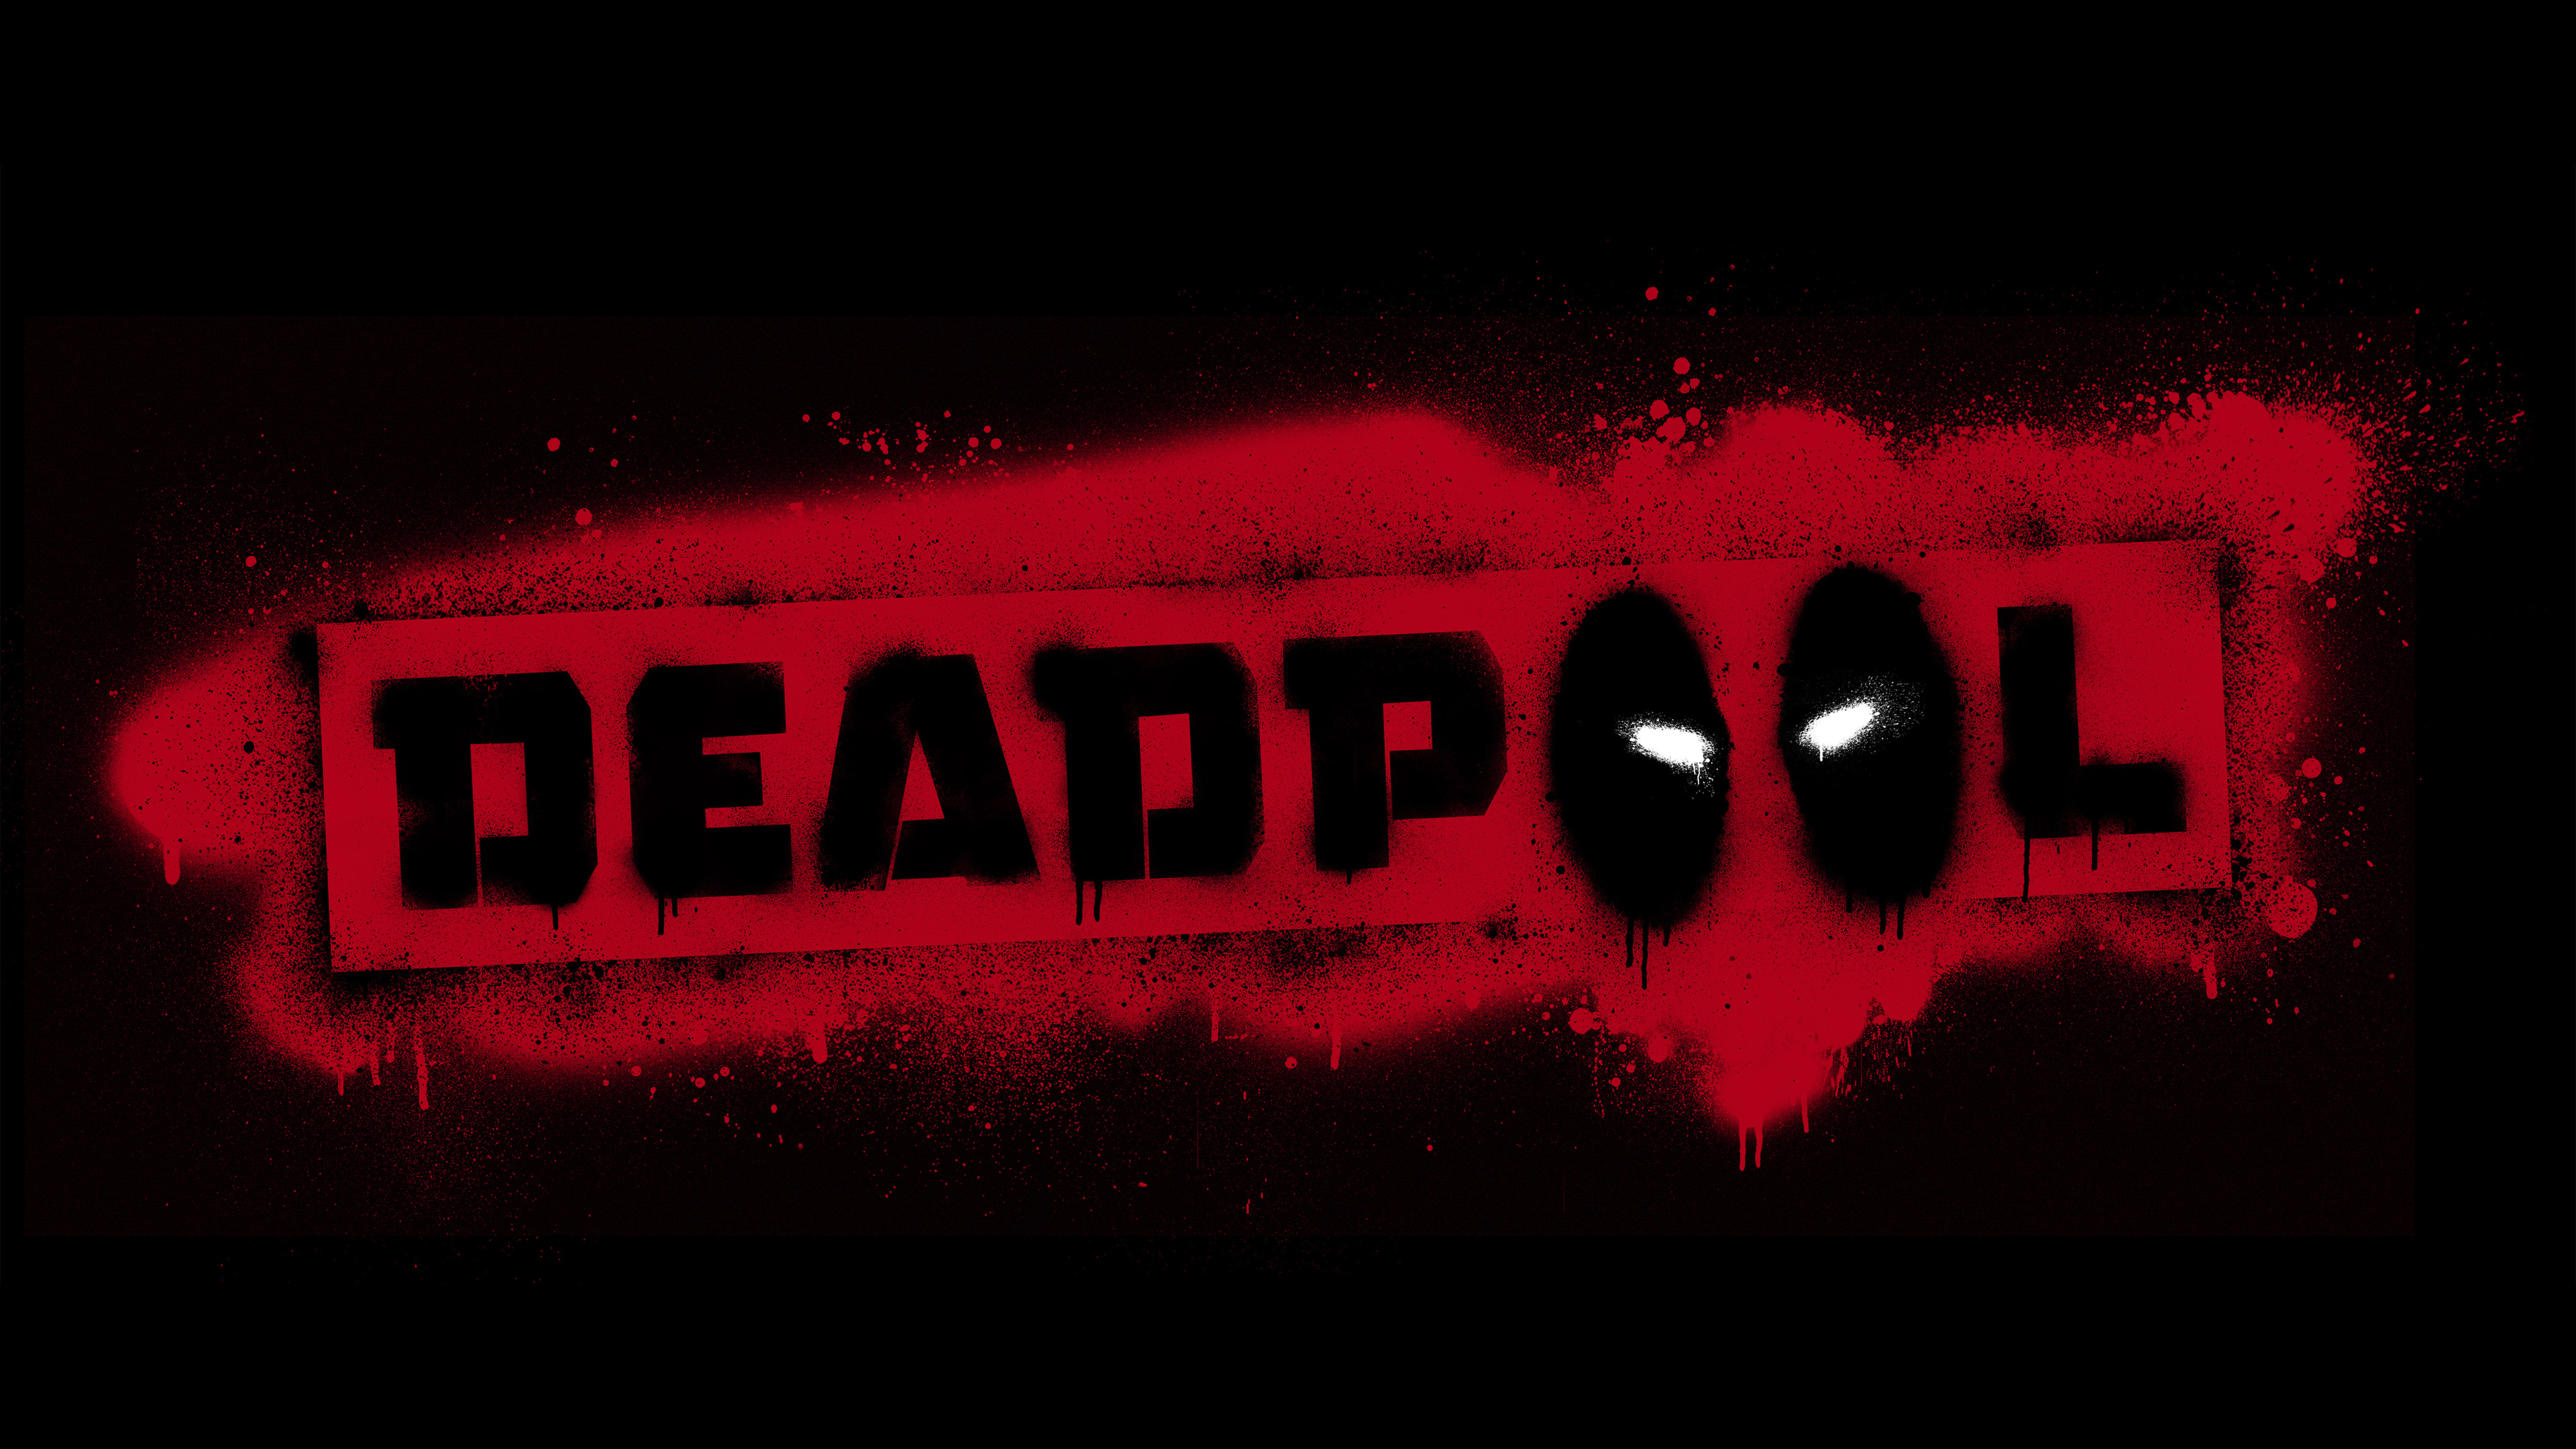 320x240 deadpool 4k logo apple iphoneipod touchgalaxy ace hd 4k deadpool 4k logo apple iphoneipod touchgalaxy ace voltagebd Image collections